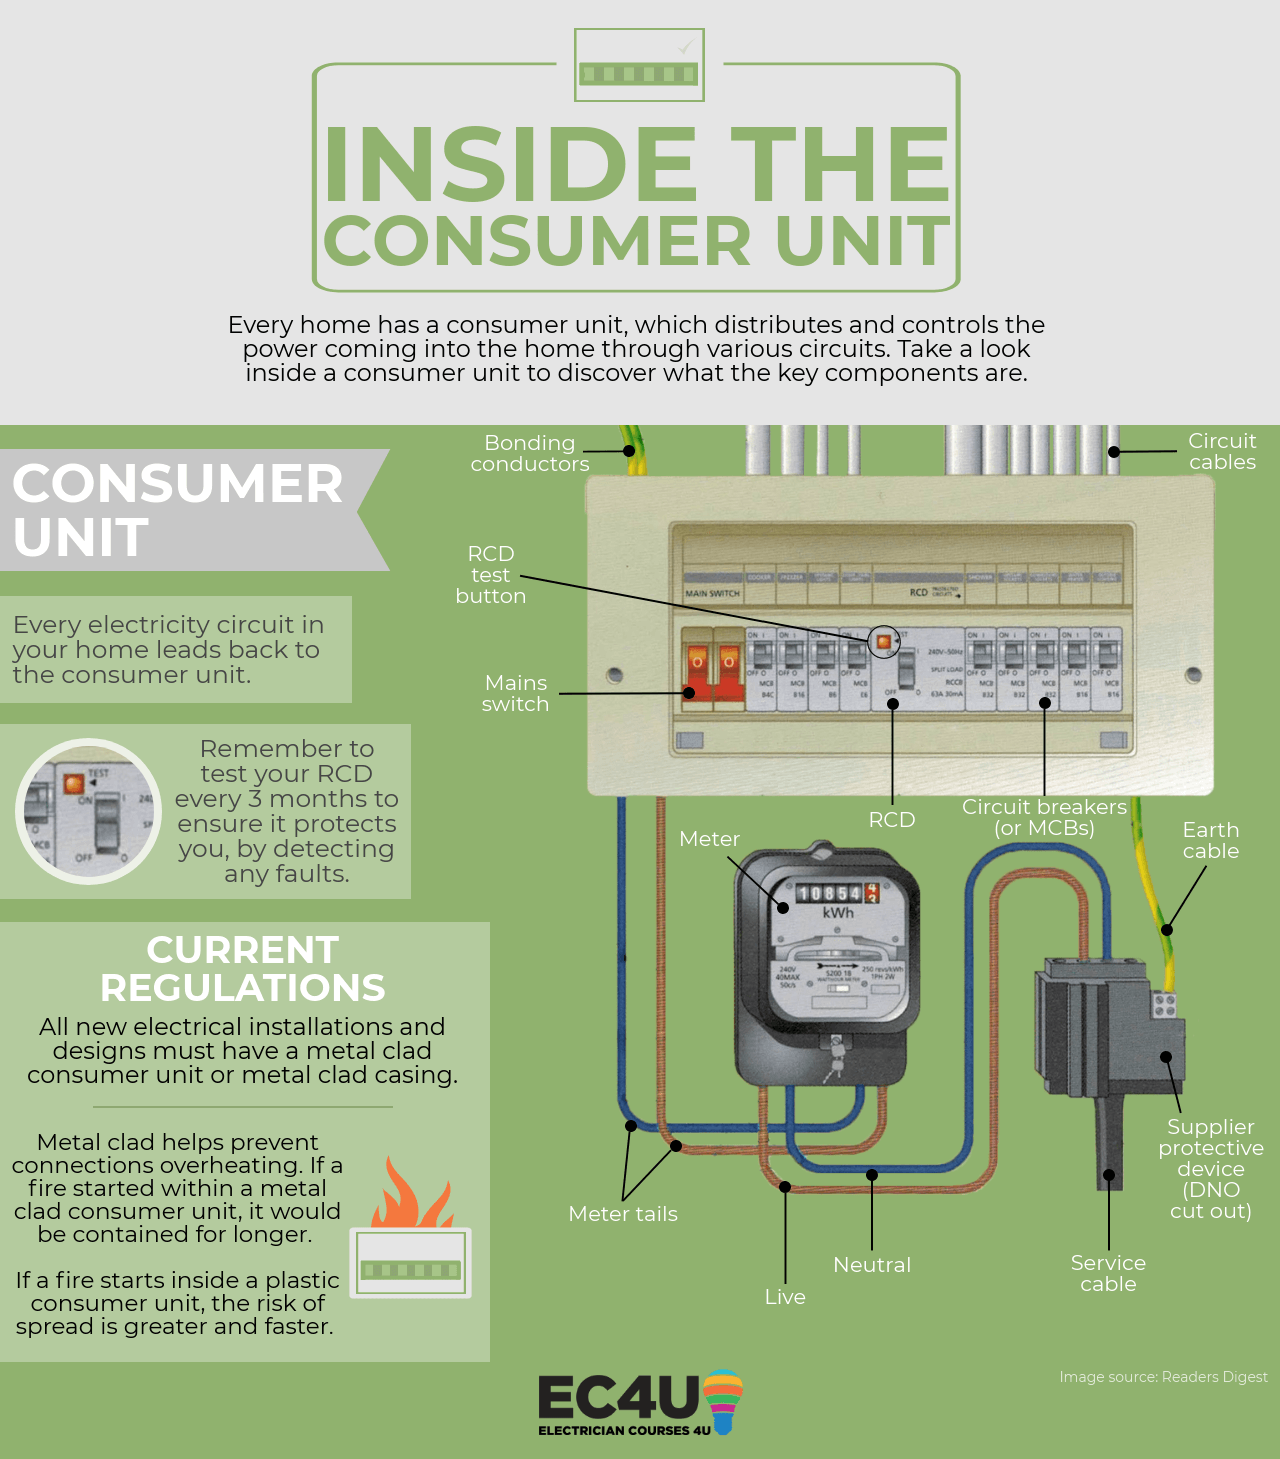 Fabulous Whats Inside Your Consumer Unit And The Dangers To Look Out For Wiring Cloud Loplapiotaidewilluminateatxorg